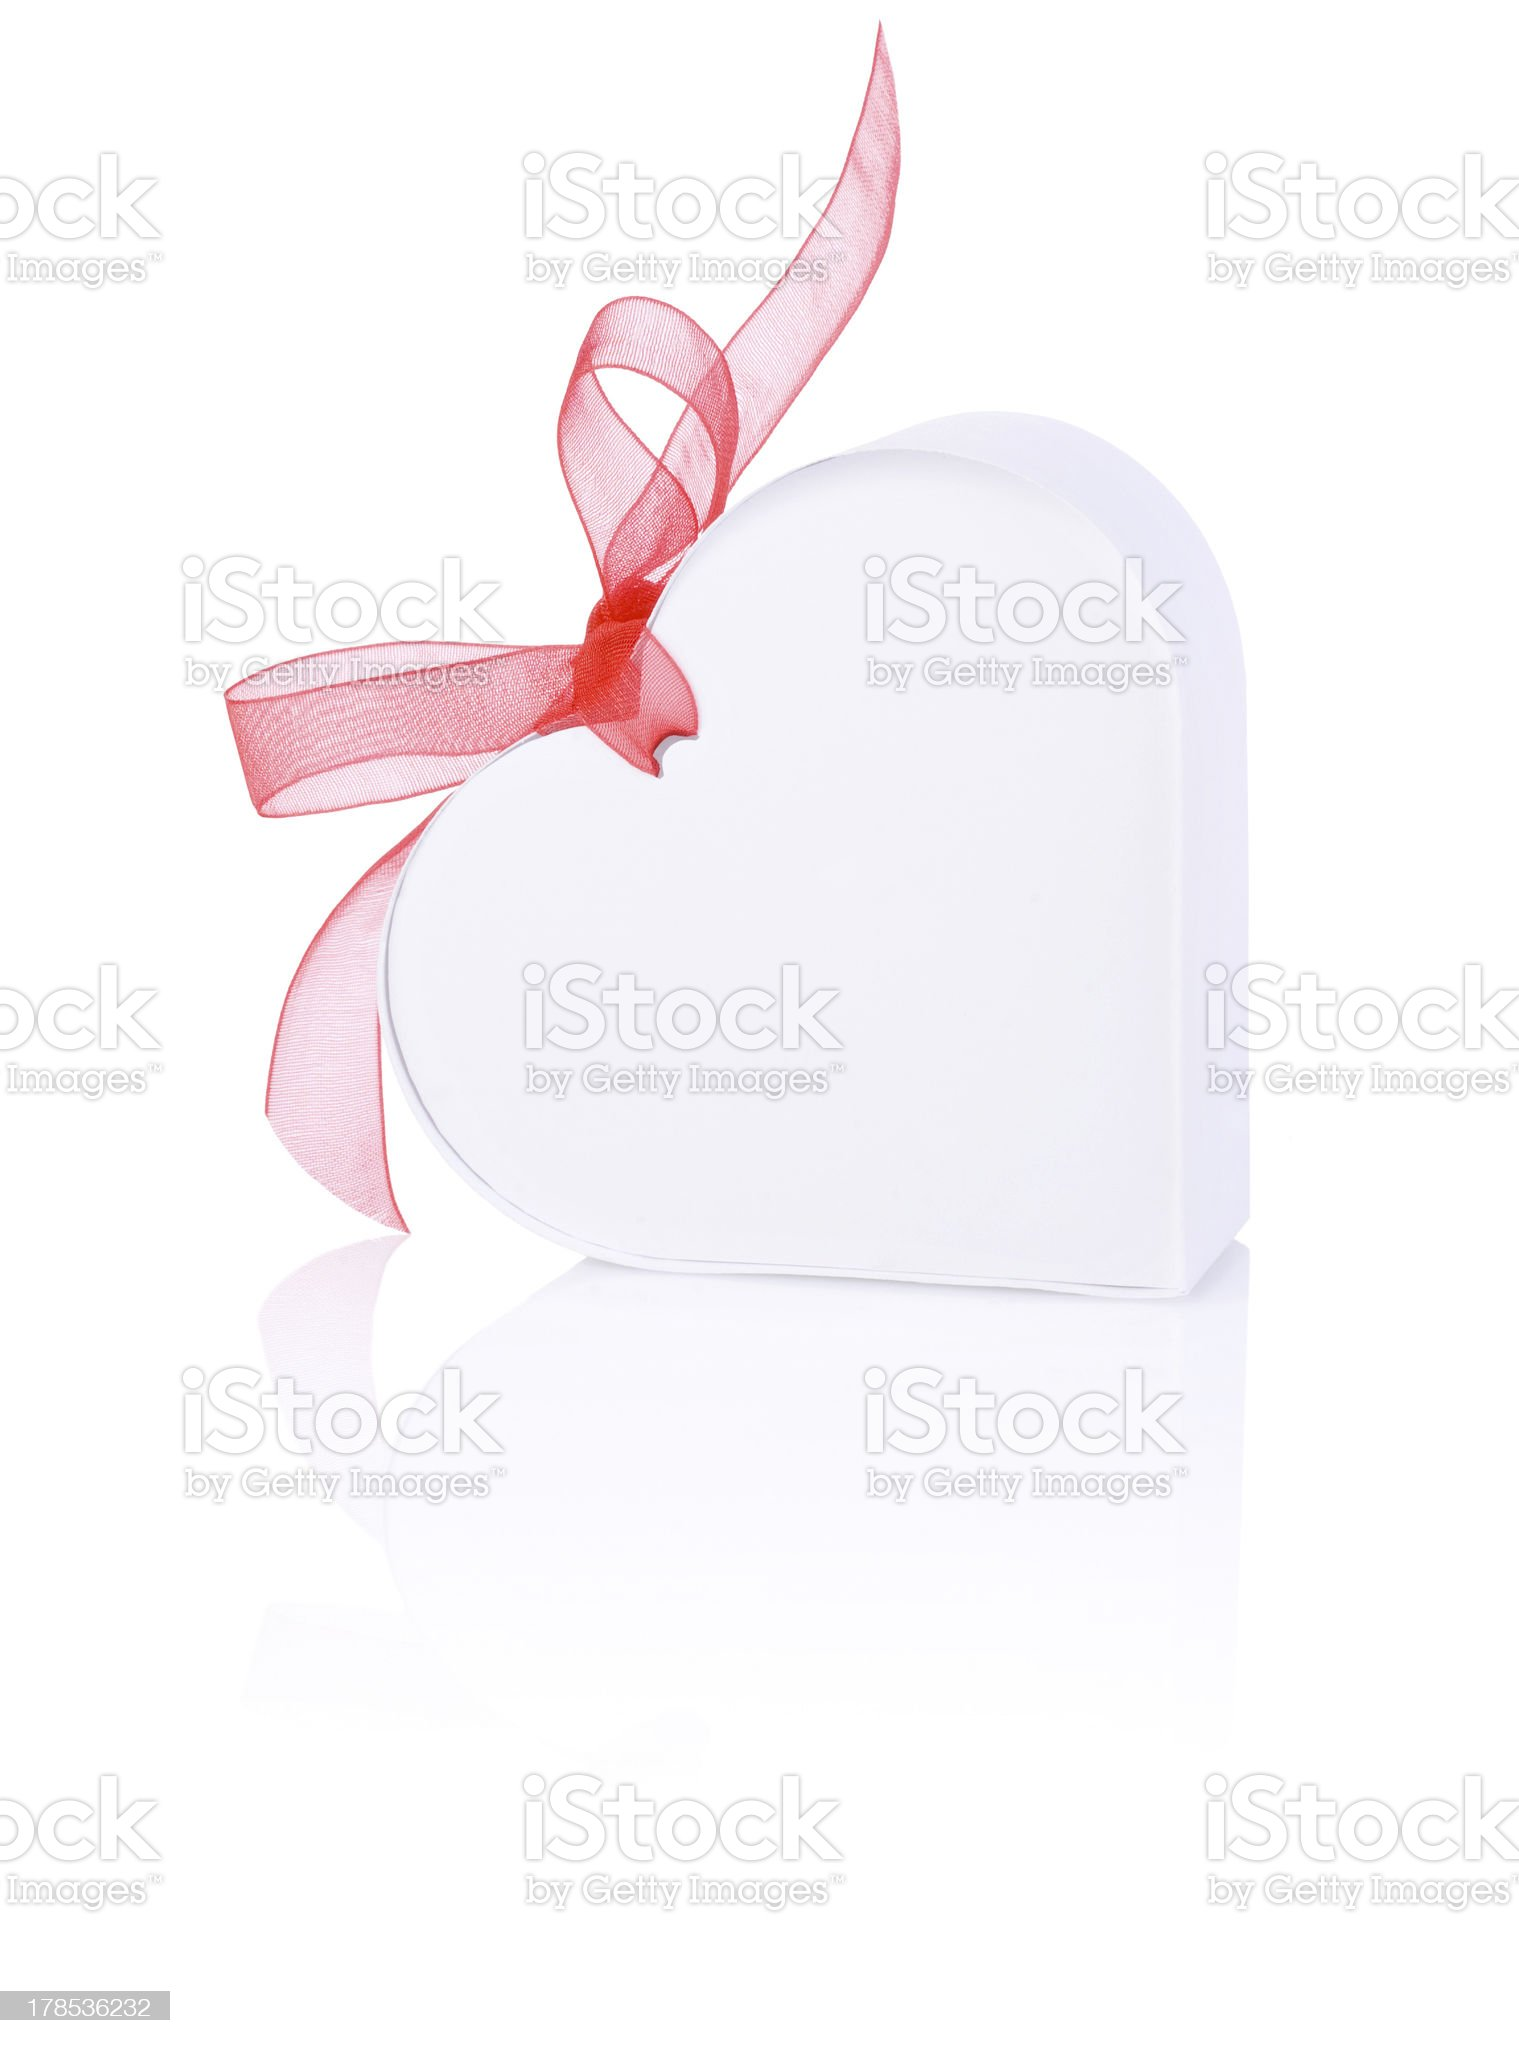 White gift form of heart with bow red ribbon royalty-free stock photo